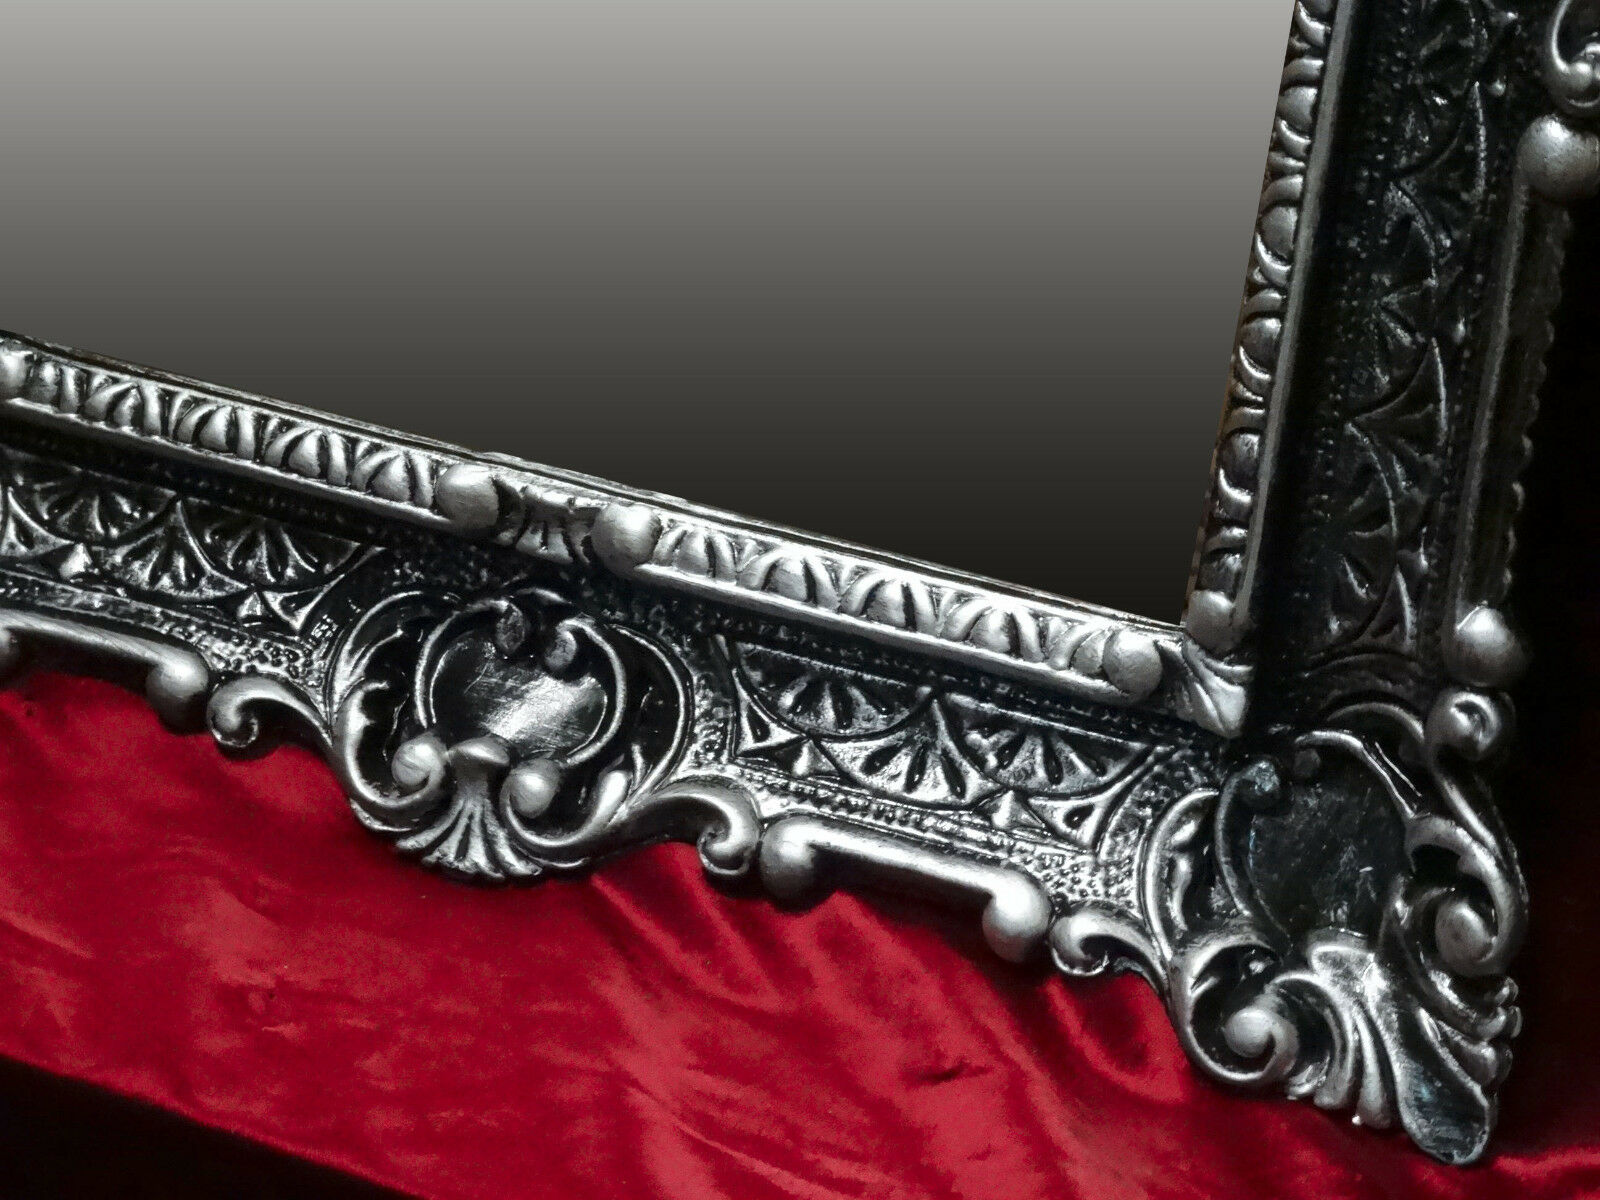 miroir mural noir argent ancien baroque bad miroir de. Black Bedroom Furniture Sets. Home Design Ideas